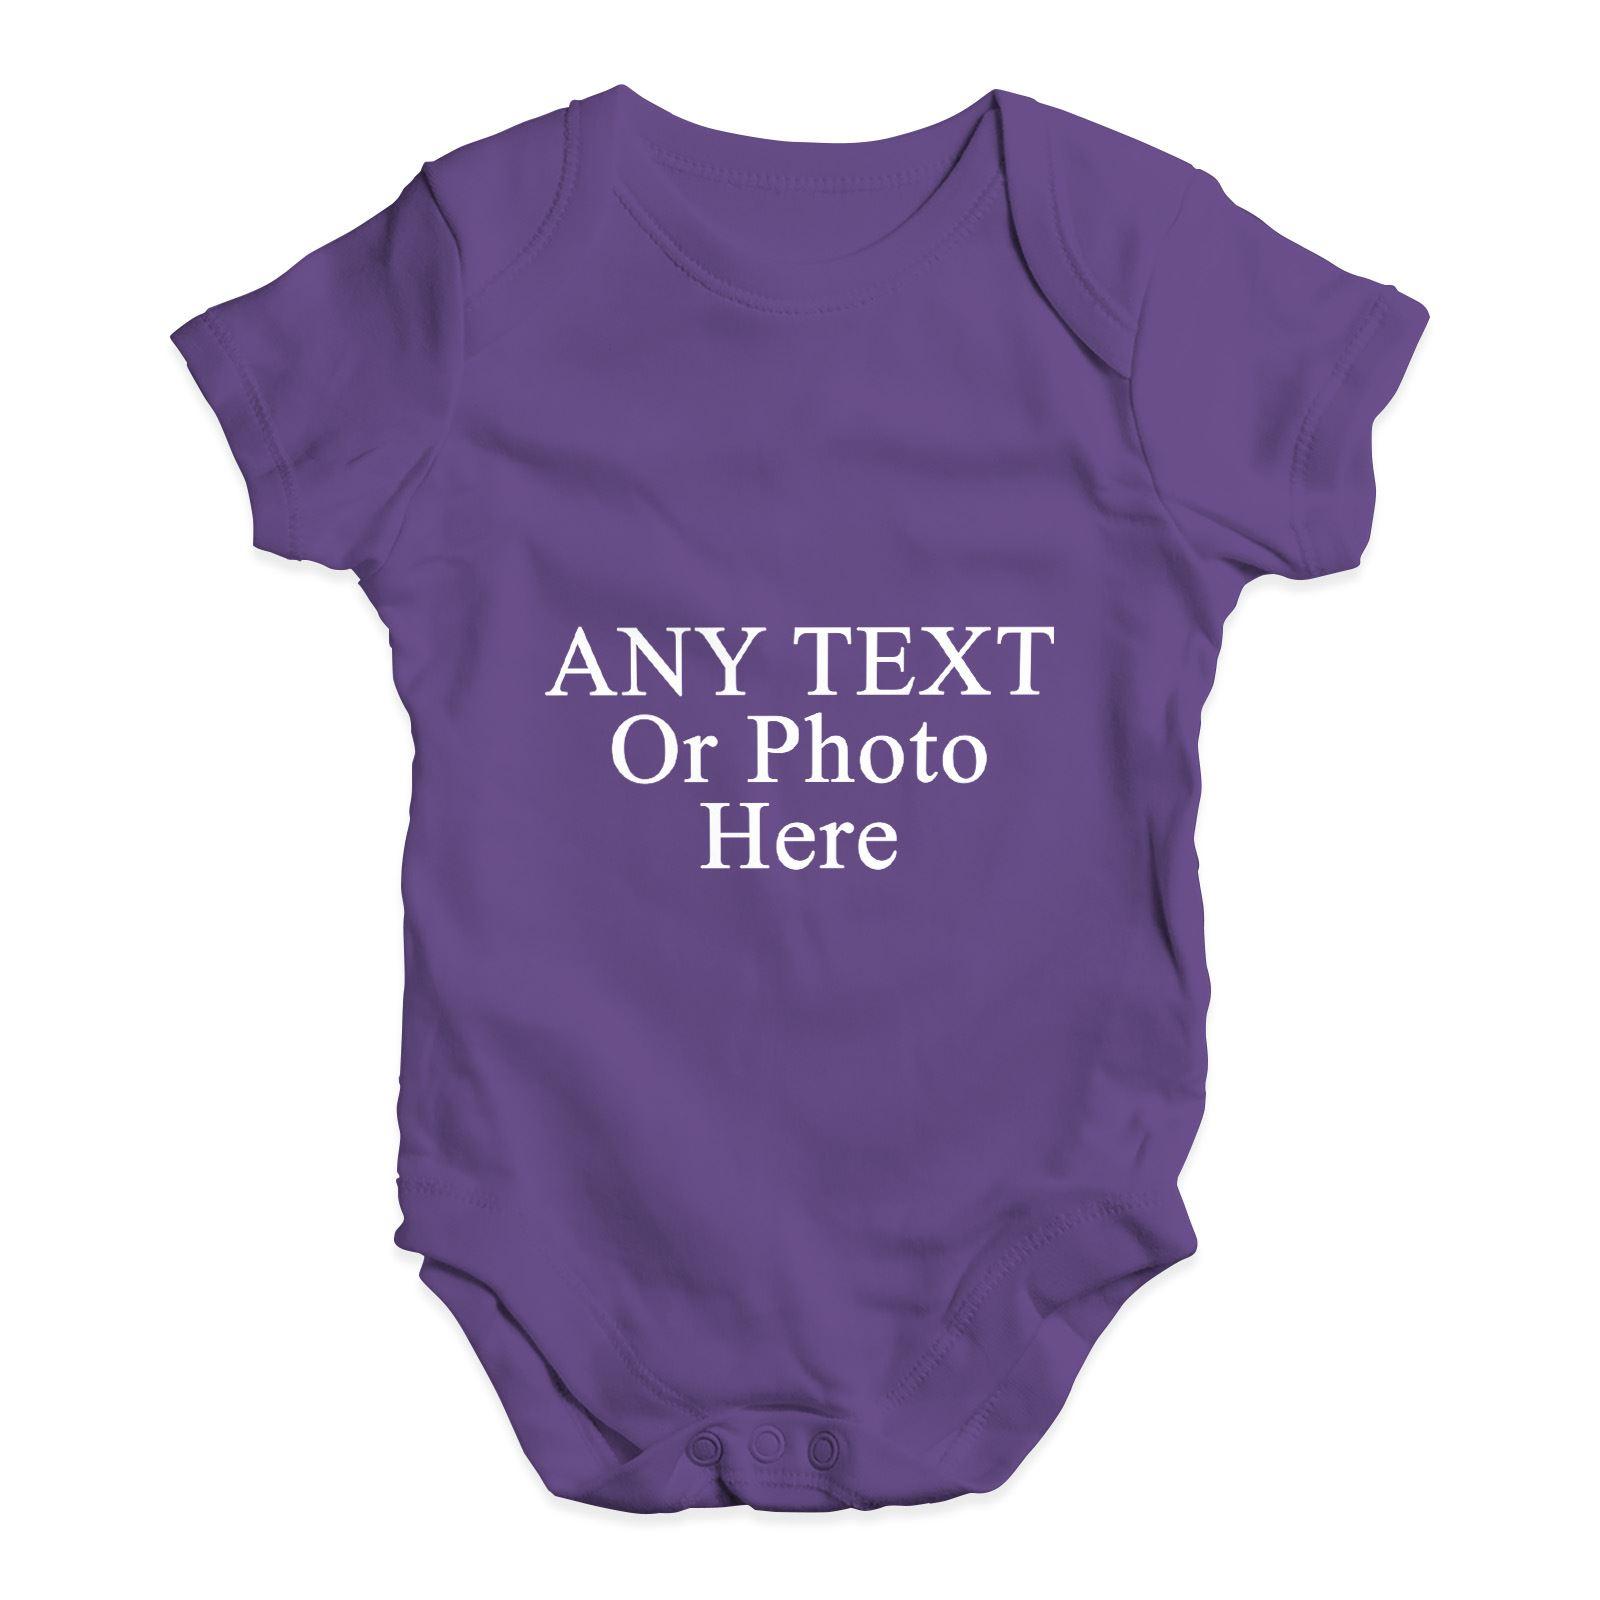 Personalised-Design-Your-Own-Wording-Photo-Baby-Unisex-Funny-Baby-Grow-Bodysuit